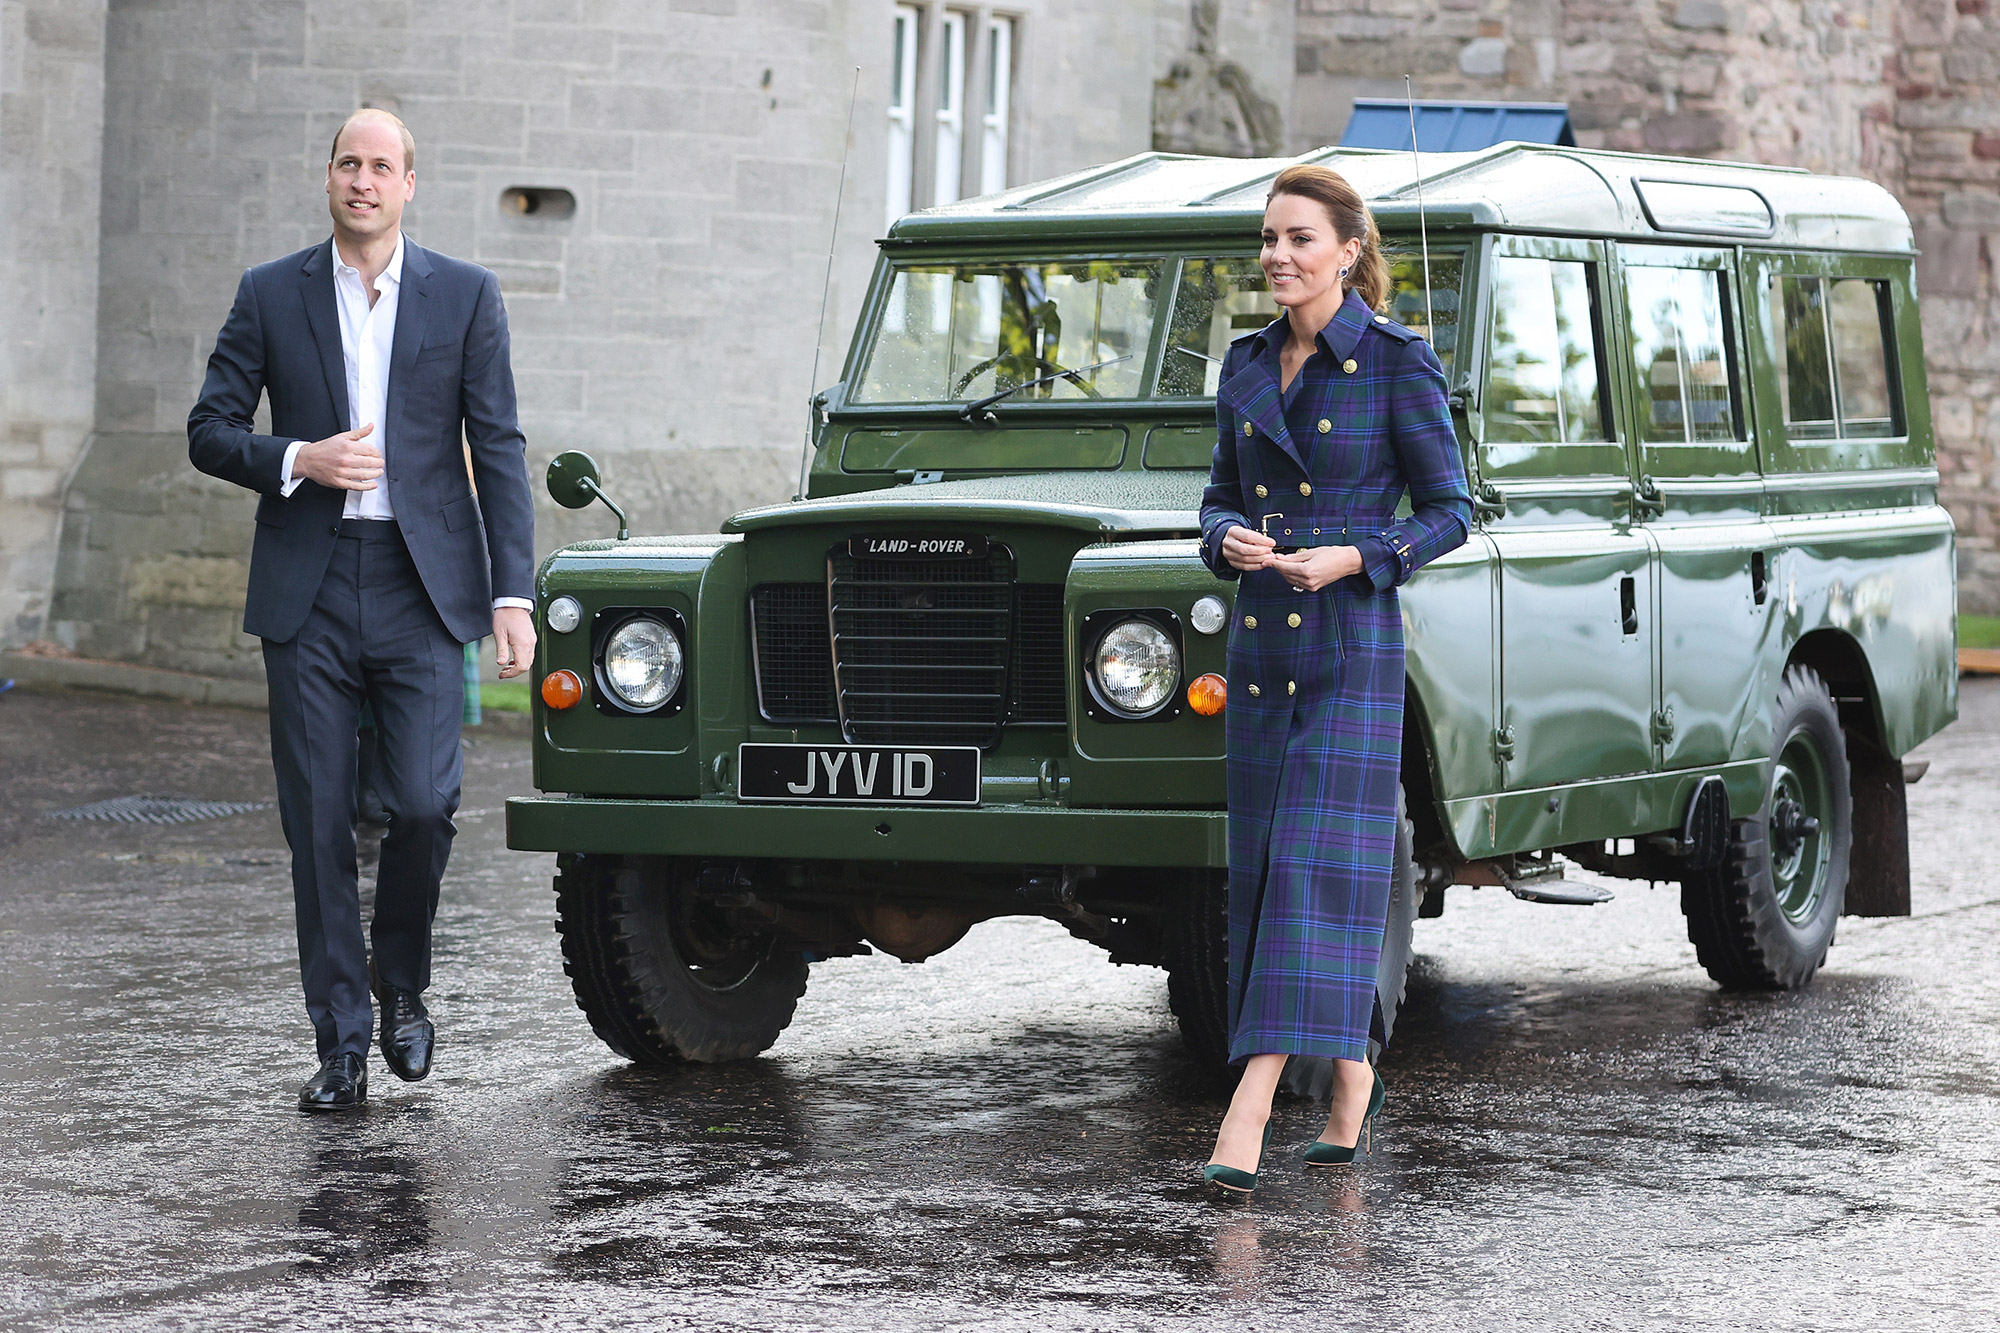 Prince William, Duke of Cambridge and Catherine, Duchess of Cambridge arrive in a Land Rover Defender that previously belonged to Prince Philip, Duke of Edinburgh to host NHS Charities Together and NHS staff at a unique drive-in cinema to watch a special screening of Disney's Cruella at the Palace of Holyroodhouse on day six of their week-long visit to Scotland on May 26, 2021 in Edinburgh